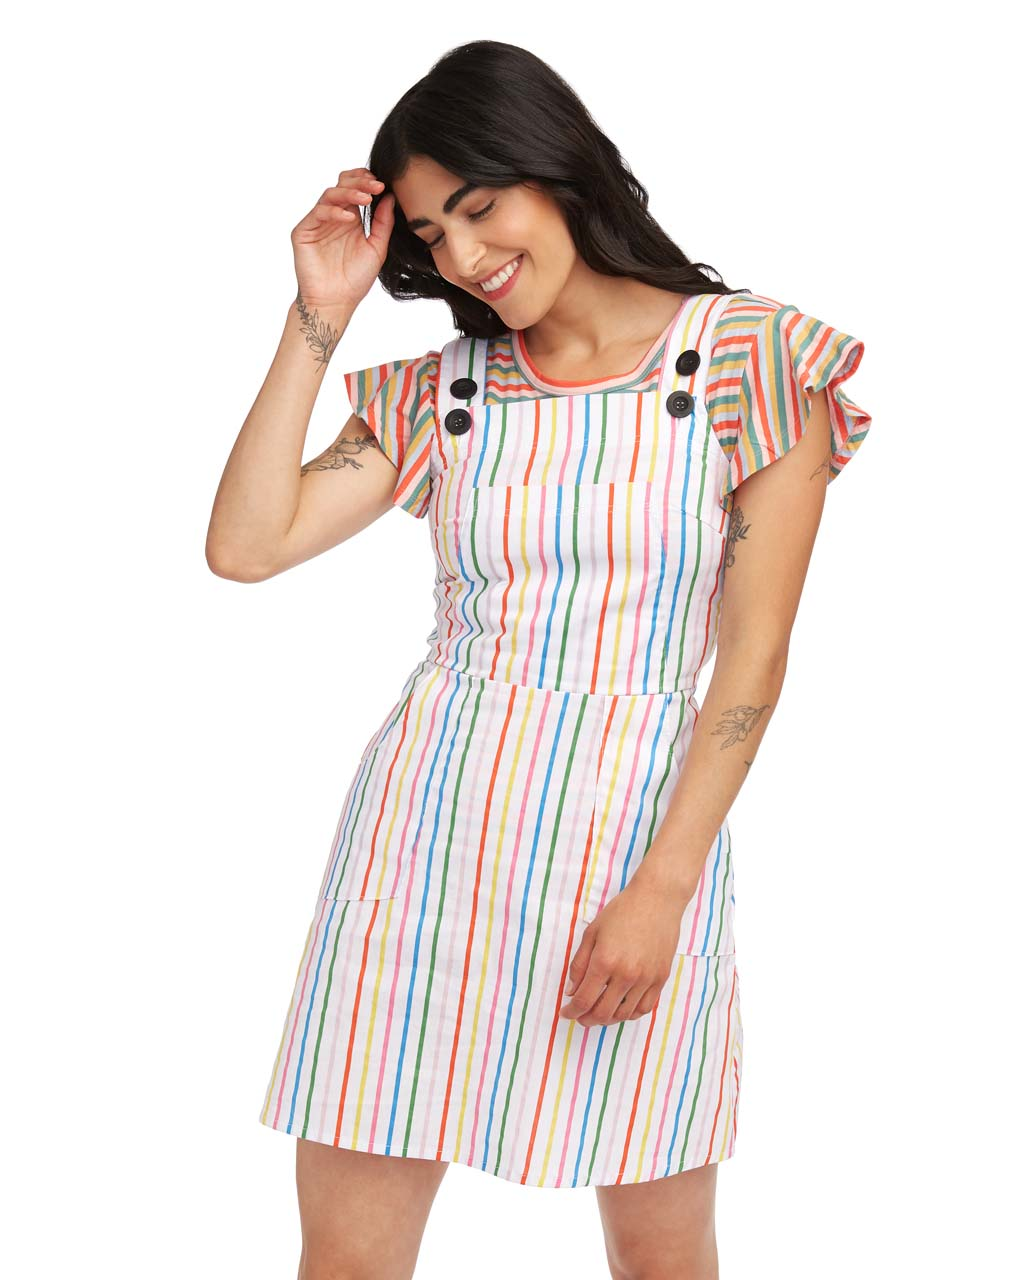 woman wearing a striped tee and rainbow striped overall dress